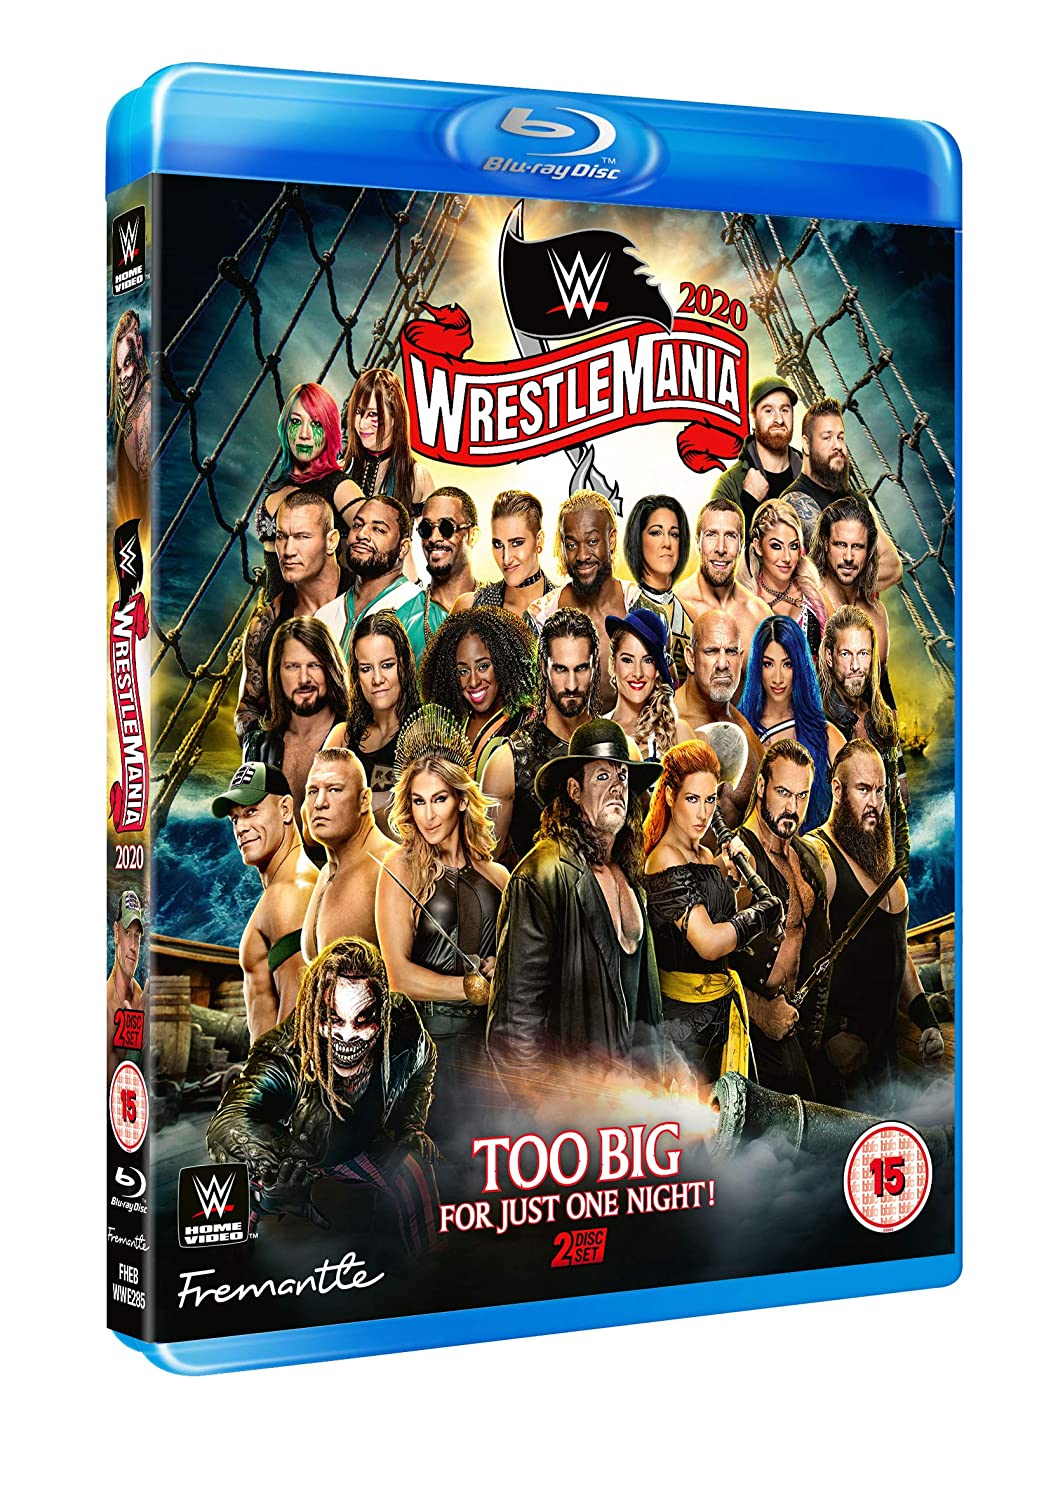 WWE: WrestleMania Raleigh Mall 36 Excellence Blu-ray